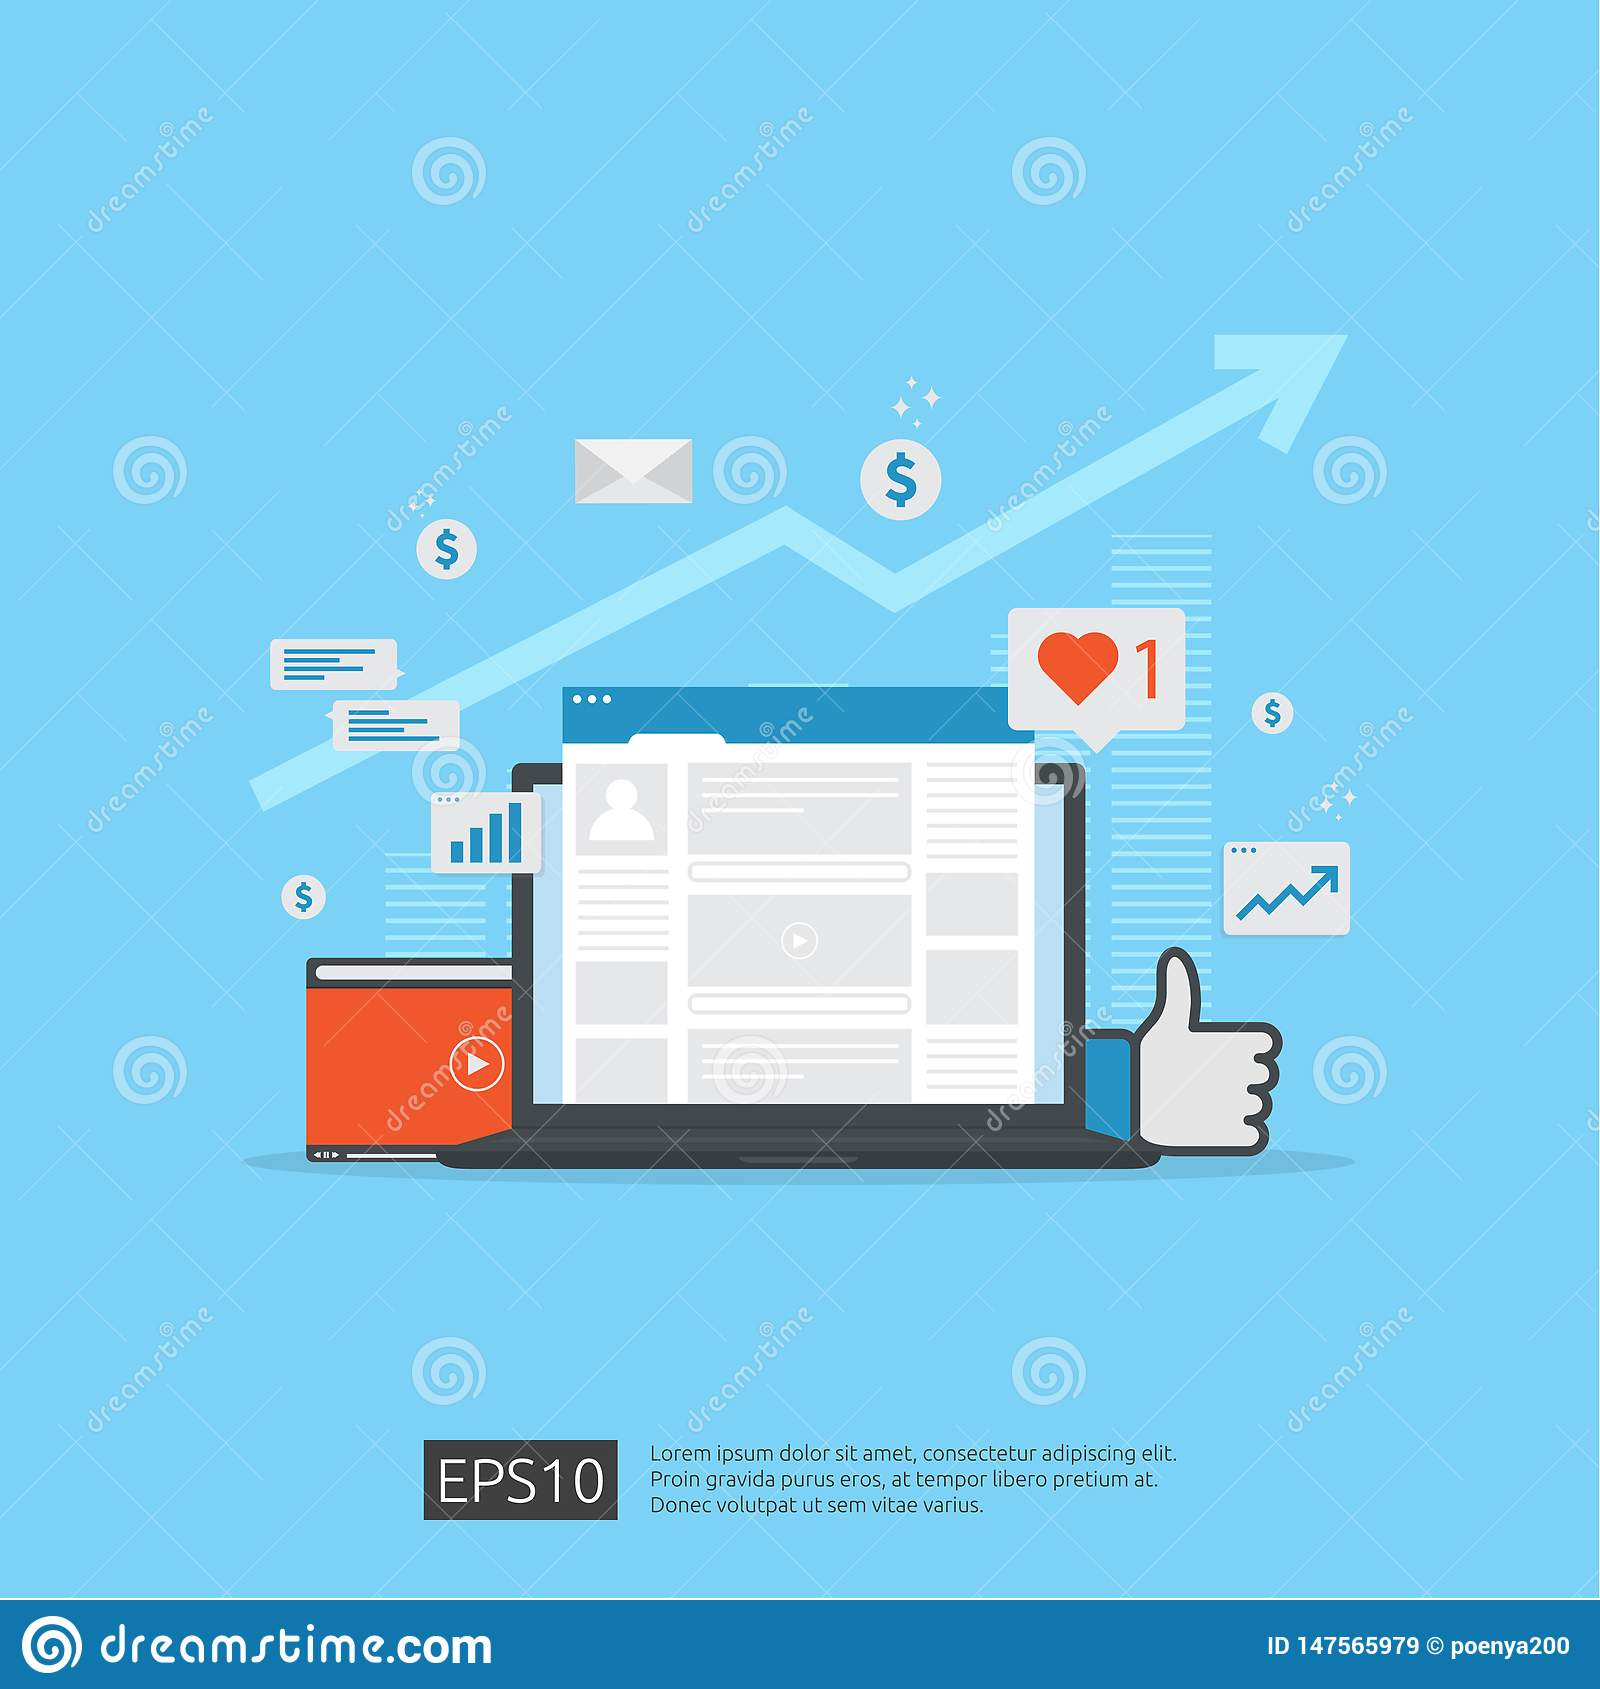 Social media network and digital marketing concept for poster, web page, banner, presentation. web traffic audience analysis for